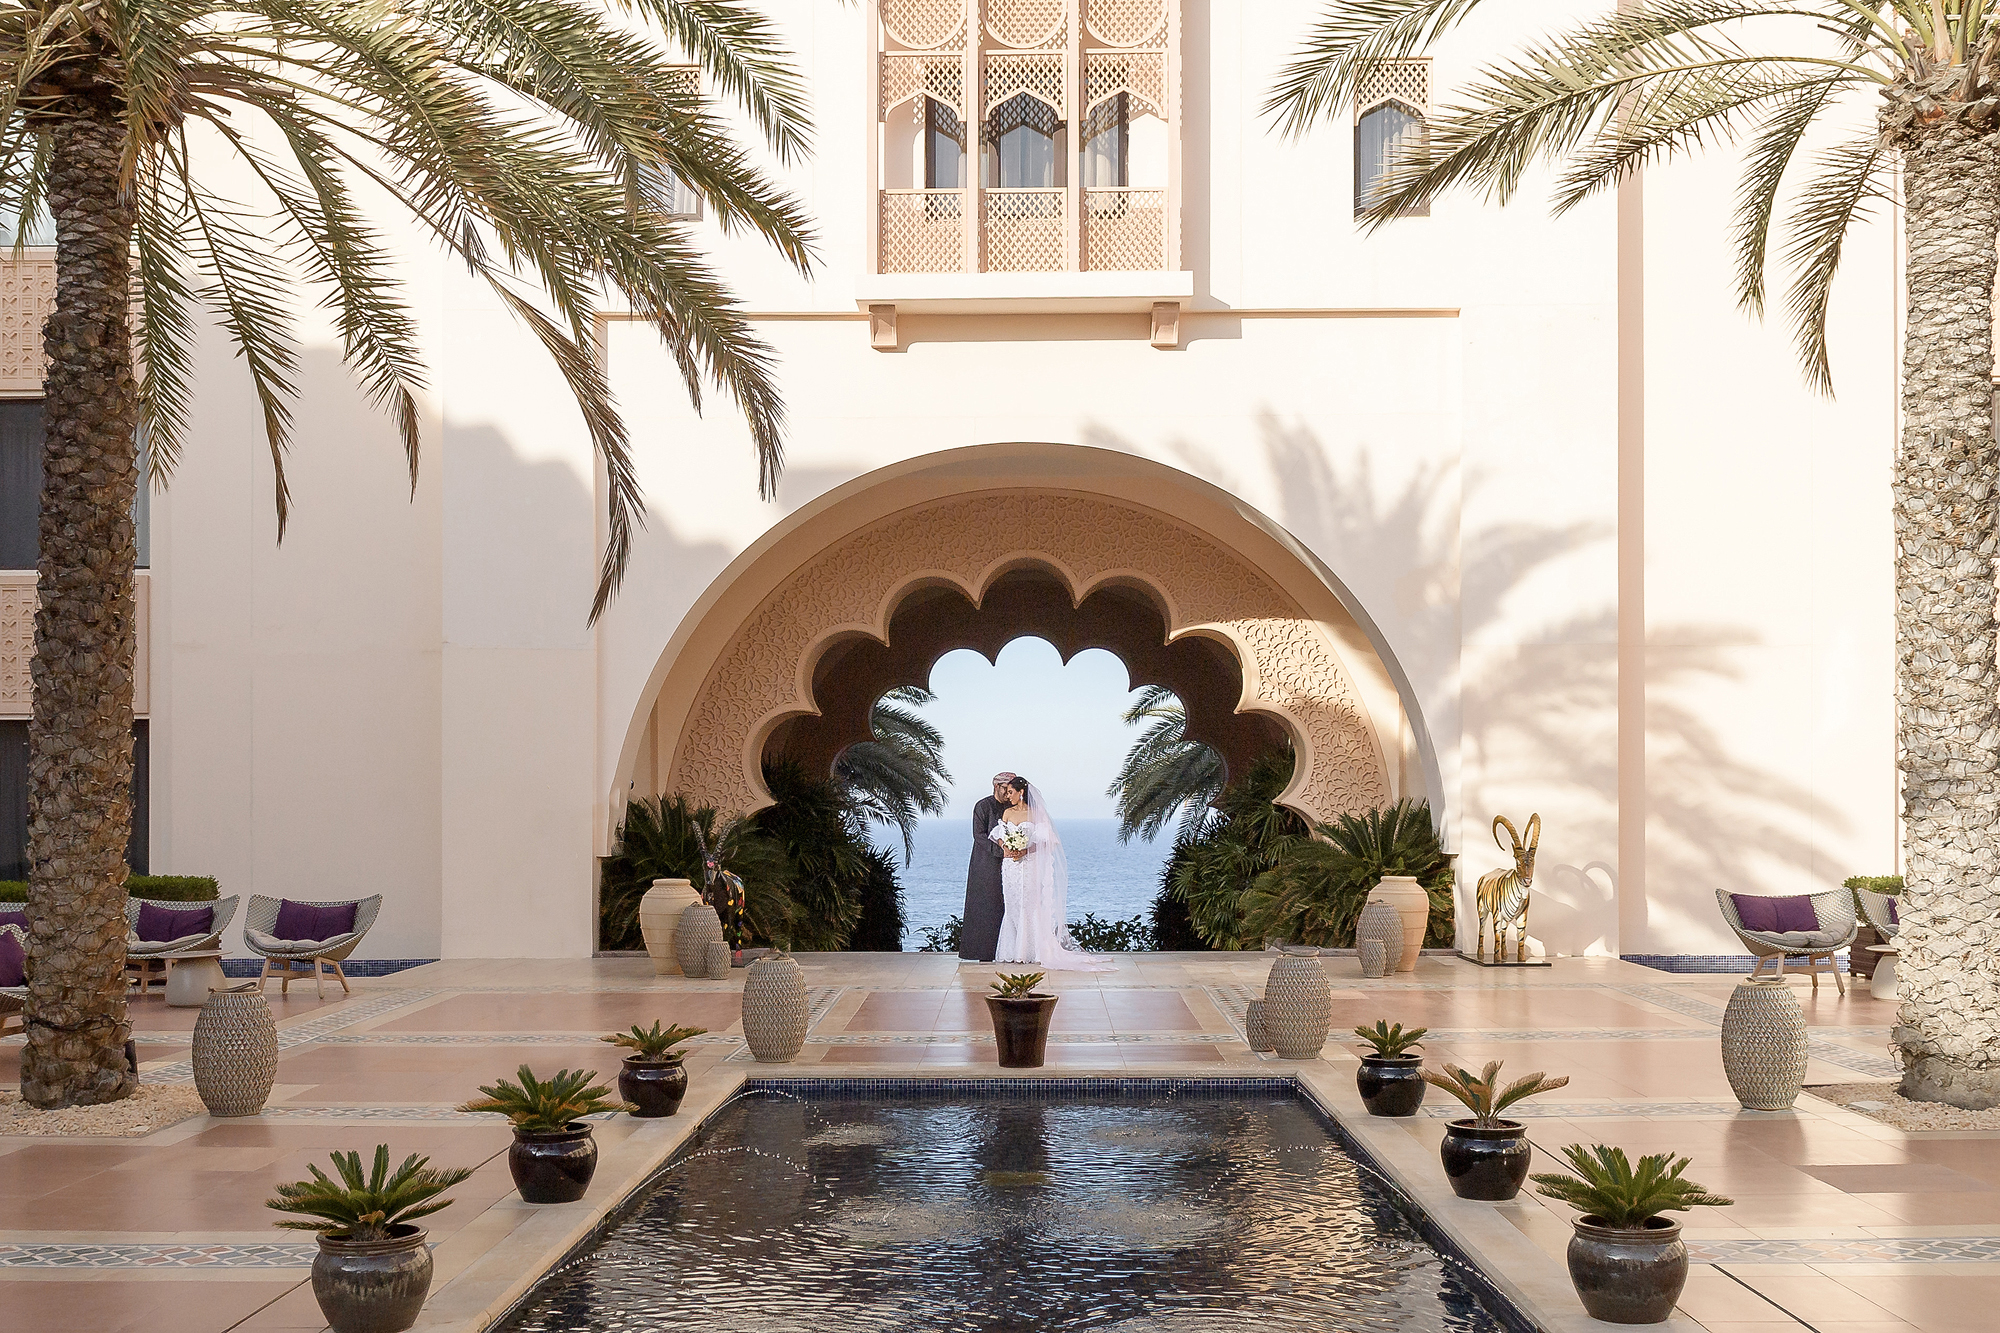 Couple against courtyard reflection pool - photo by 37 Frames